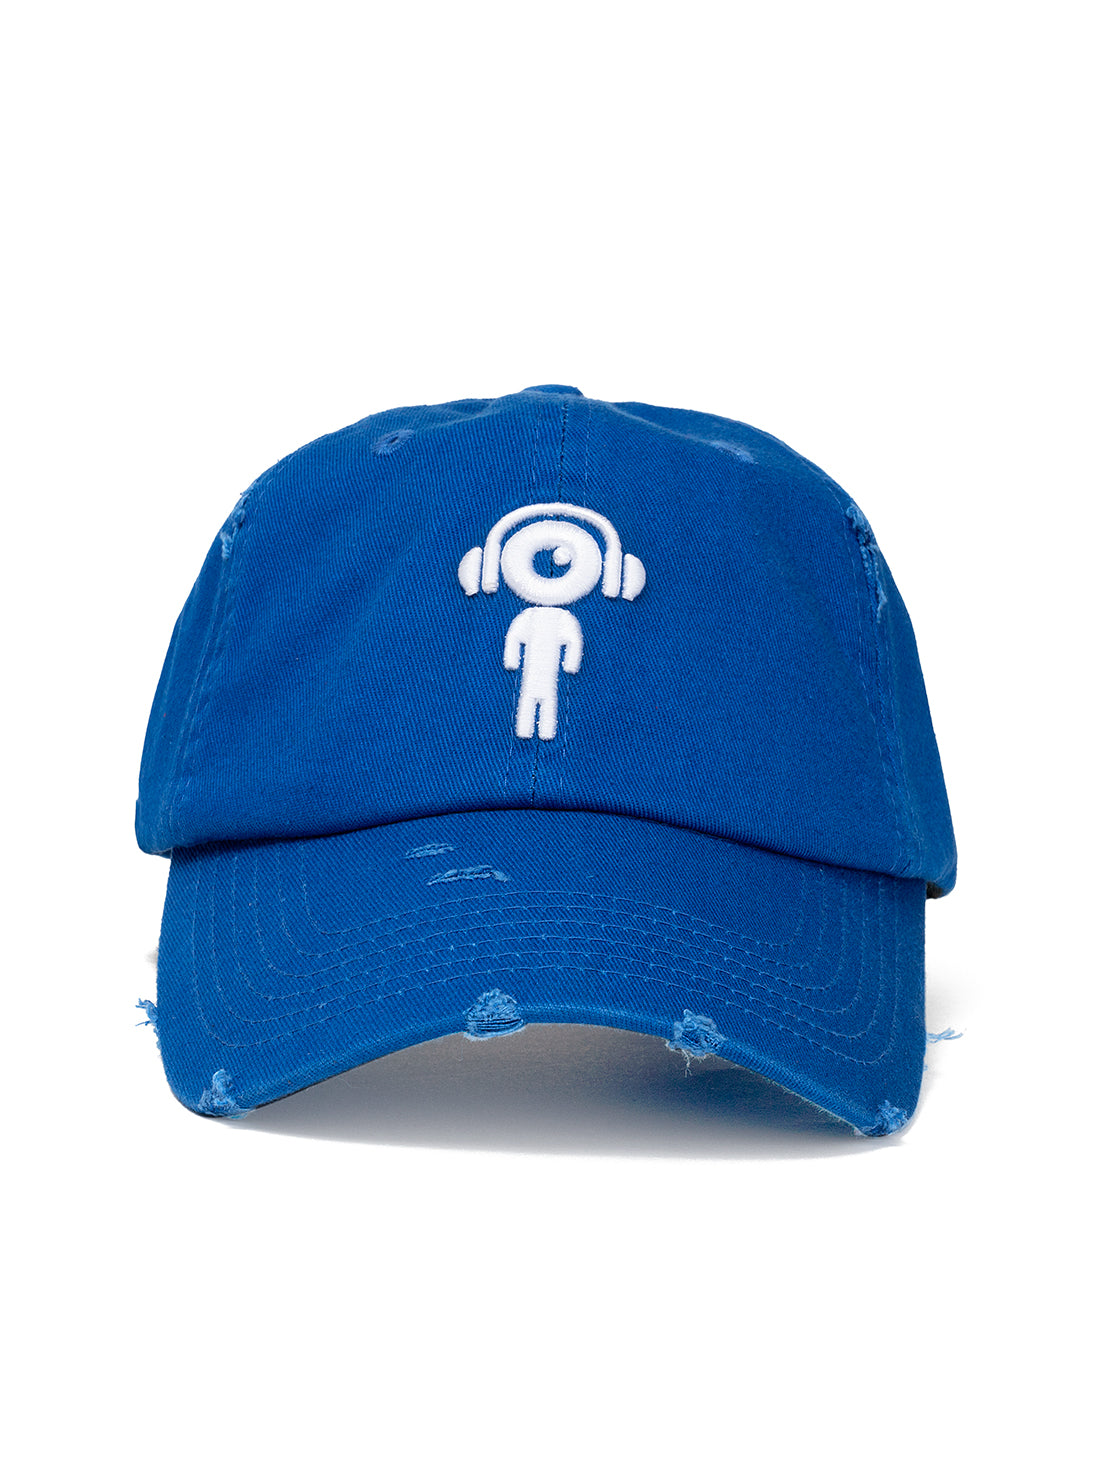 DISTRESS DAD HAT BLUE - WHITE Lil Man